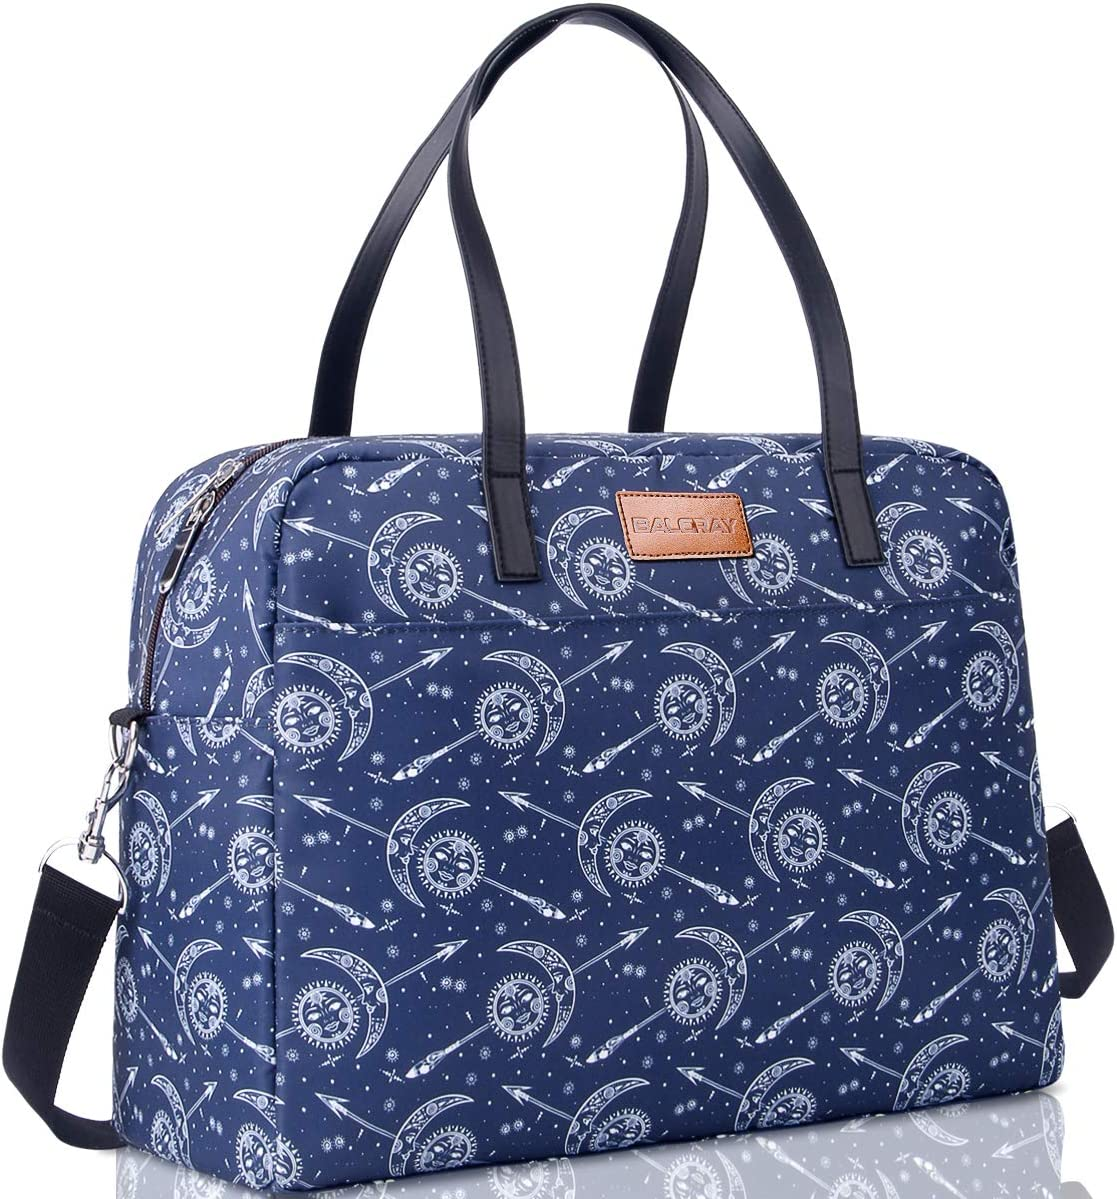 BALORAY Large Insulated Lunch Bag Waterproof Cooler Carrier Bag Lunch Tote Bags for Outdoor Camping,Beach Day or Travel Collapsible Grocery Shopping Storage Bag (G-336 Blue)